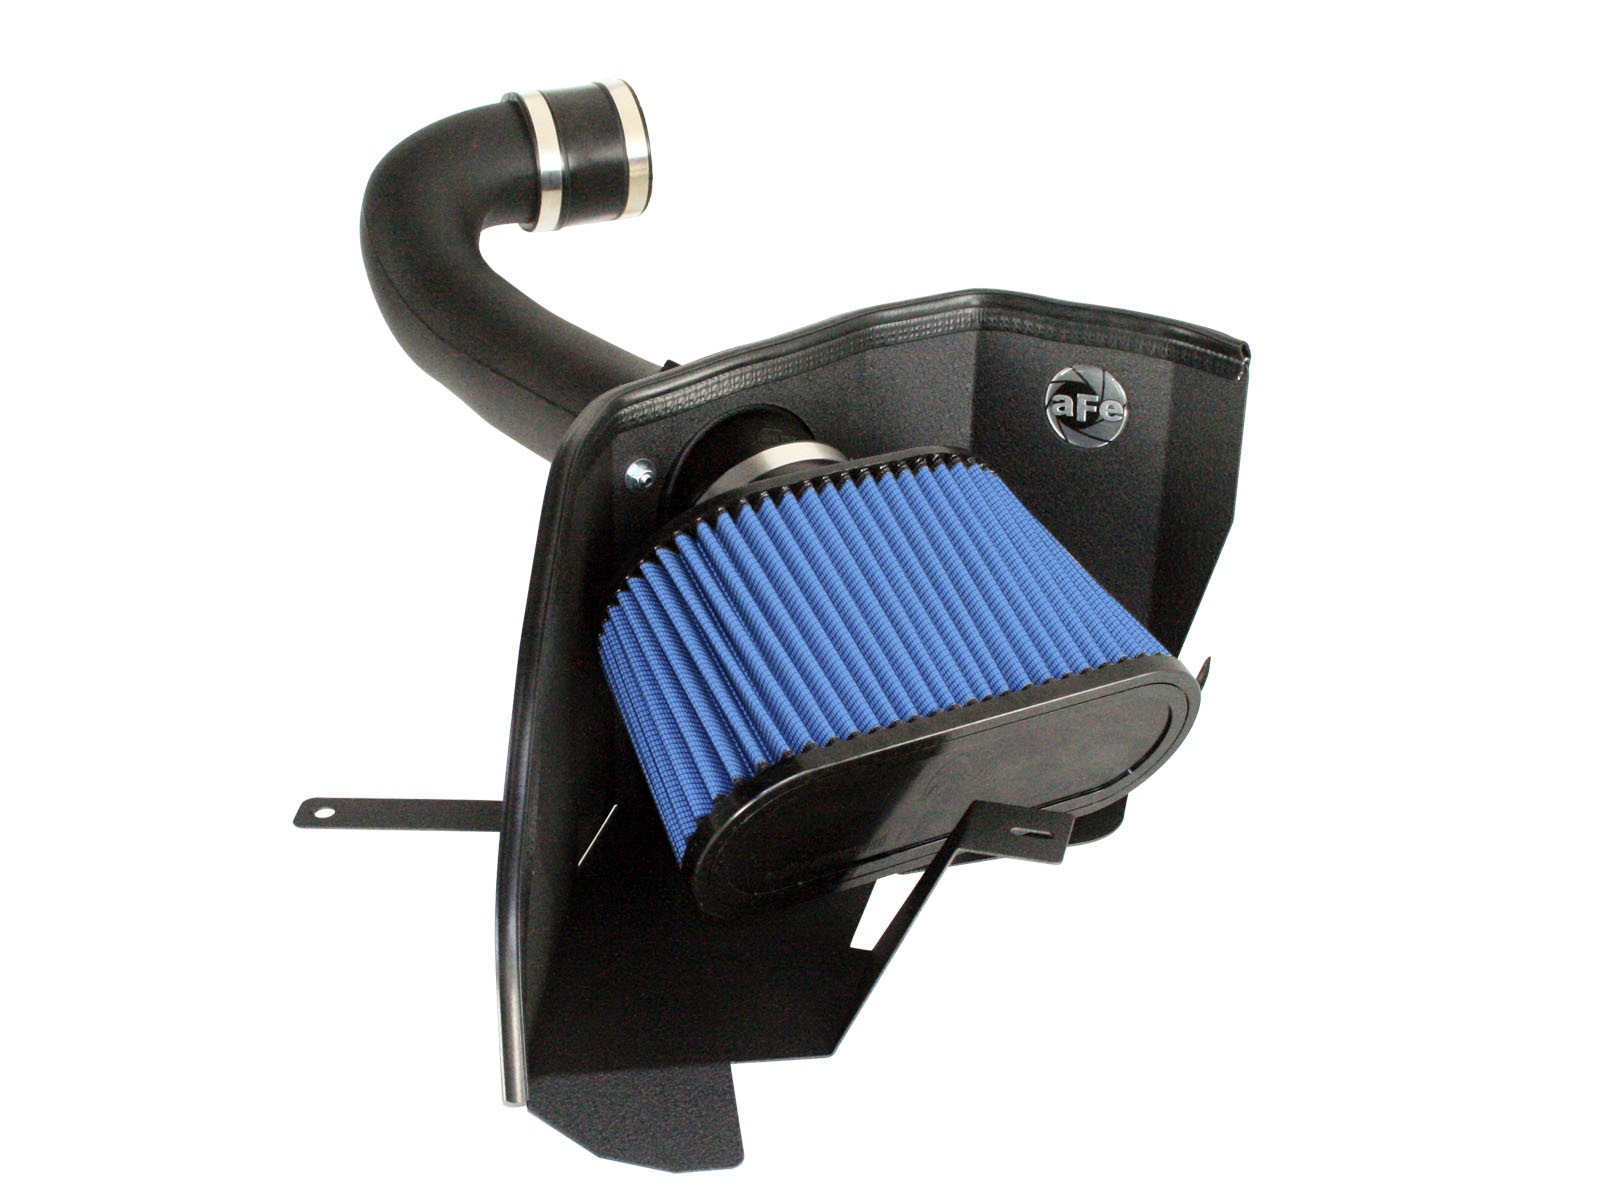 2005-2009 Ford Mustang 4.0L v6 aFe Power Magnum FORCE Stage-2 Pro 5R Cold Air Intake System